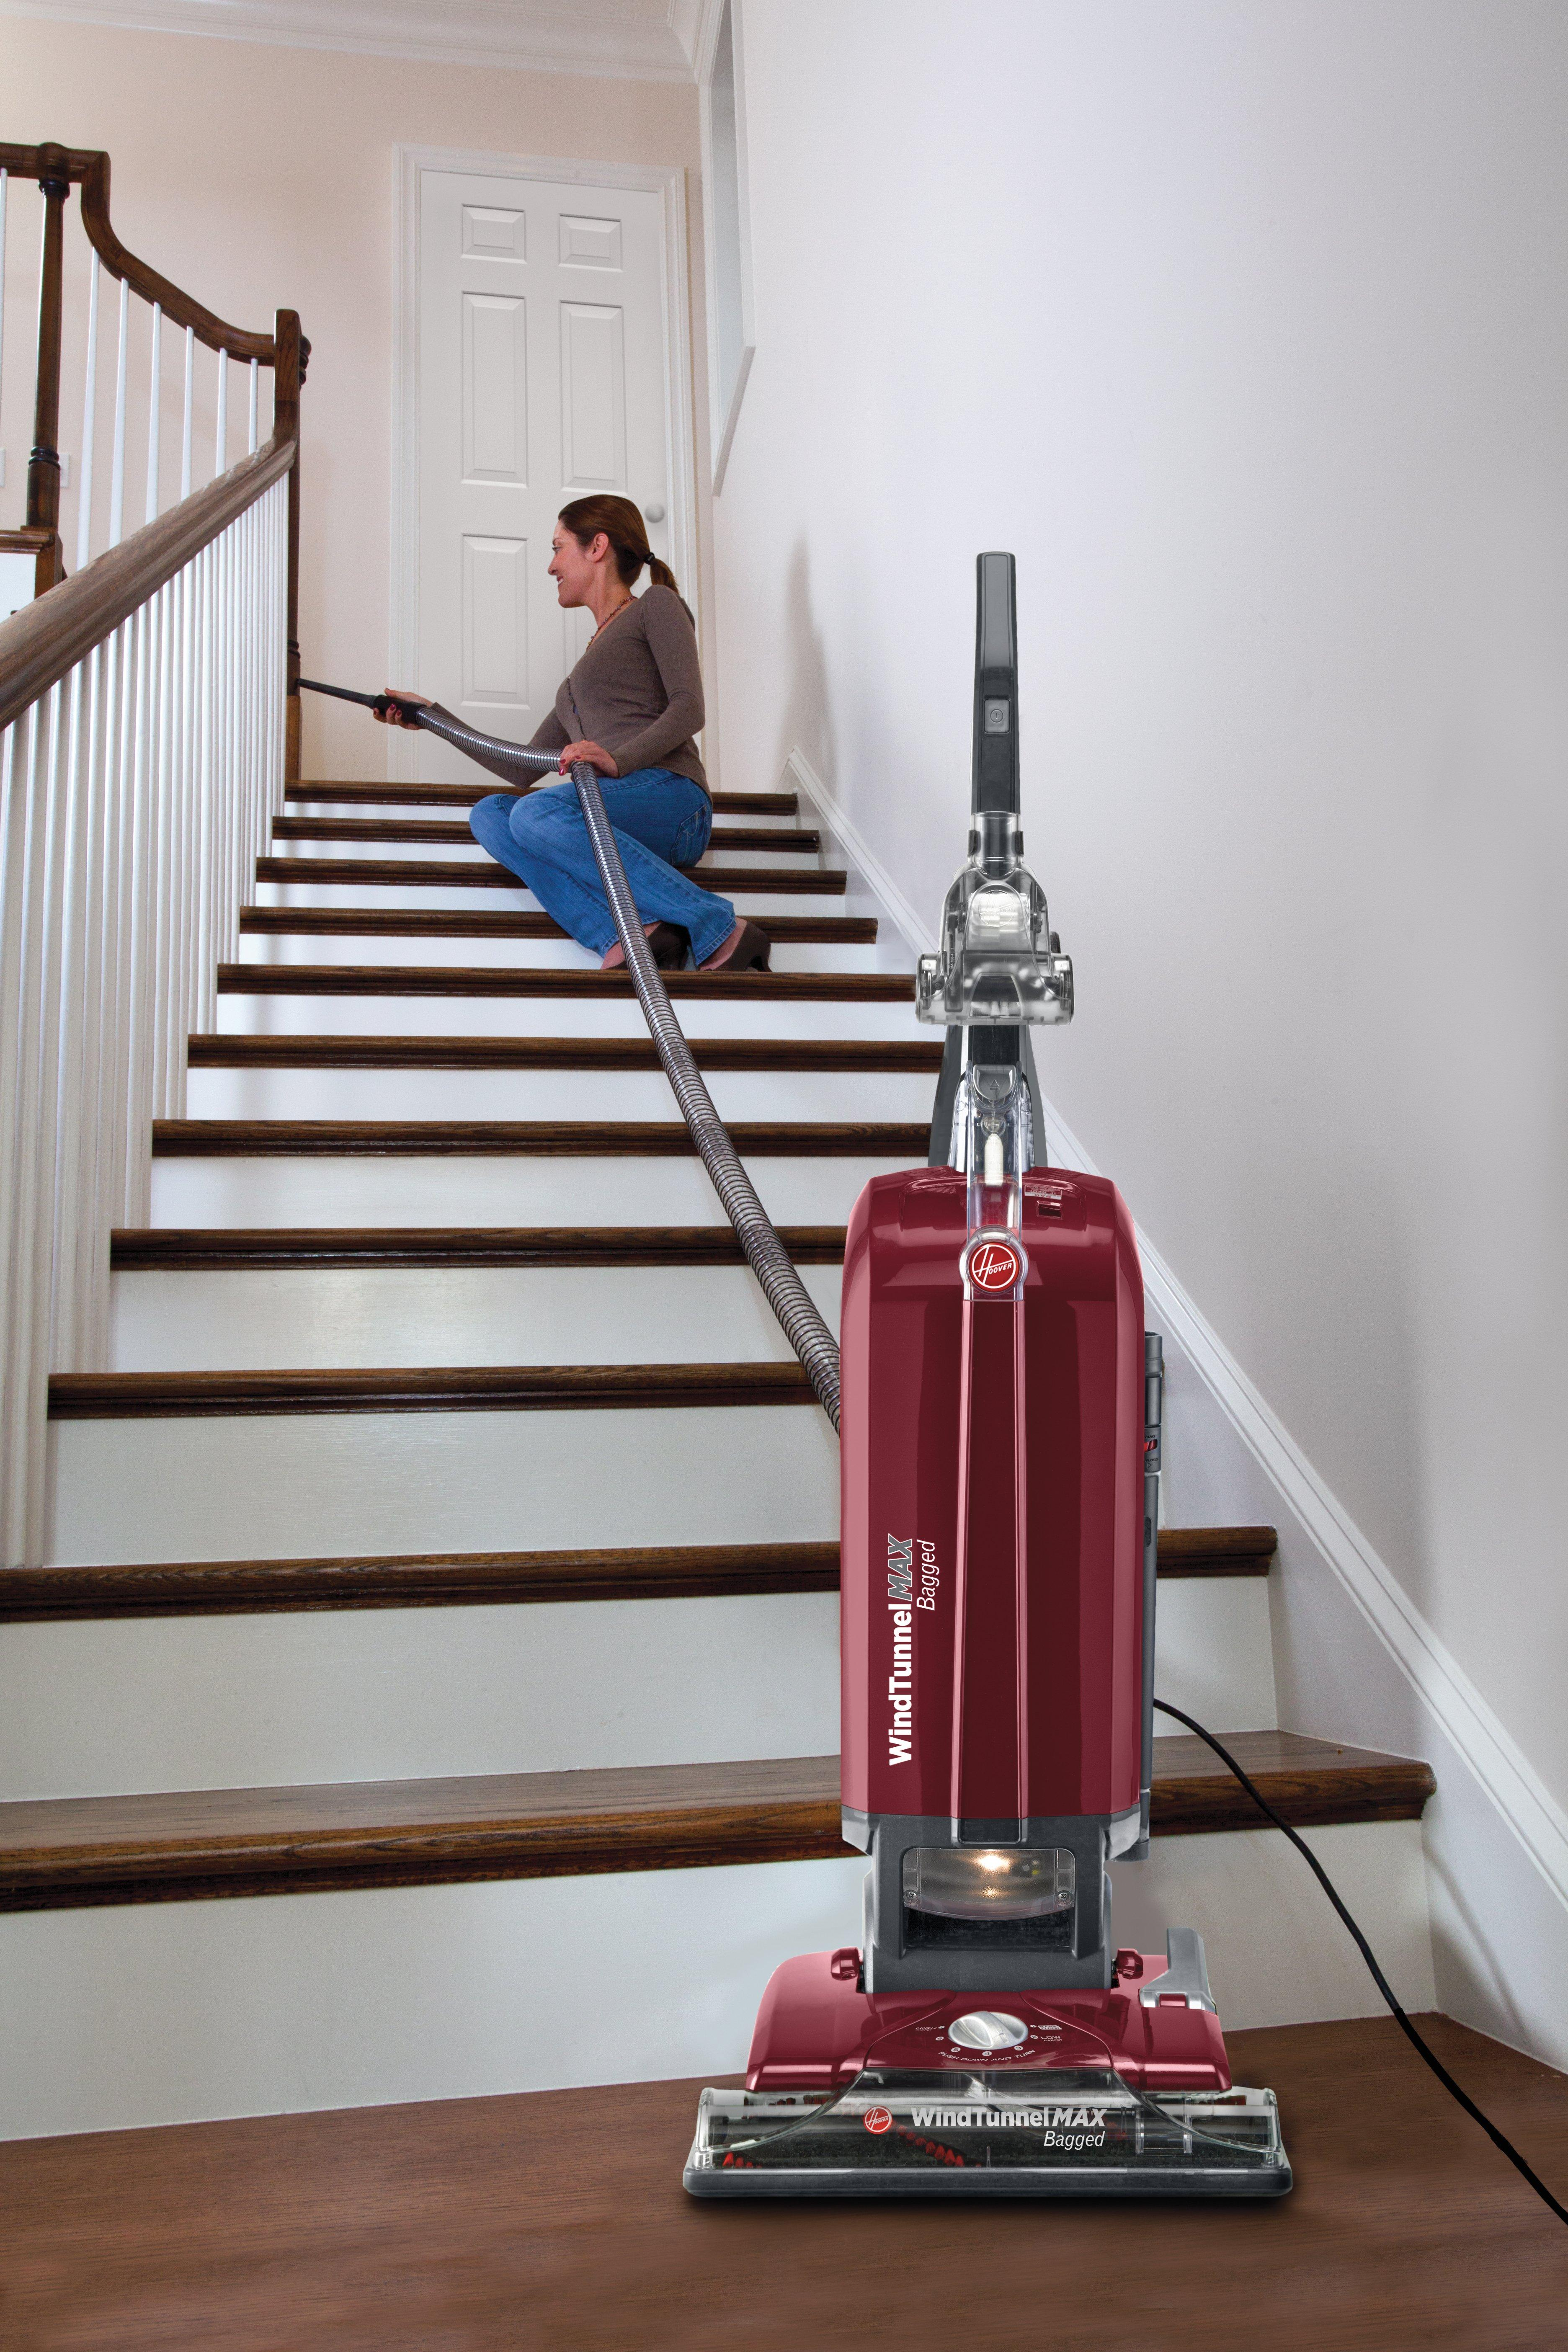 Hoover WindTunnel MAX Bagged Upright Vacuum Cleaner, UH30600 6